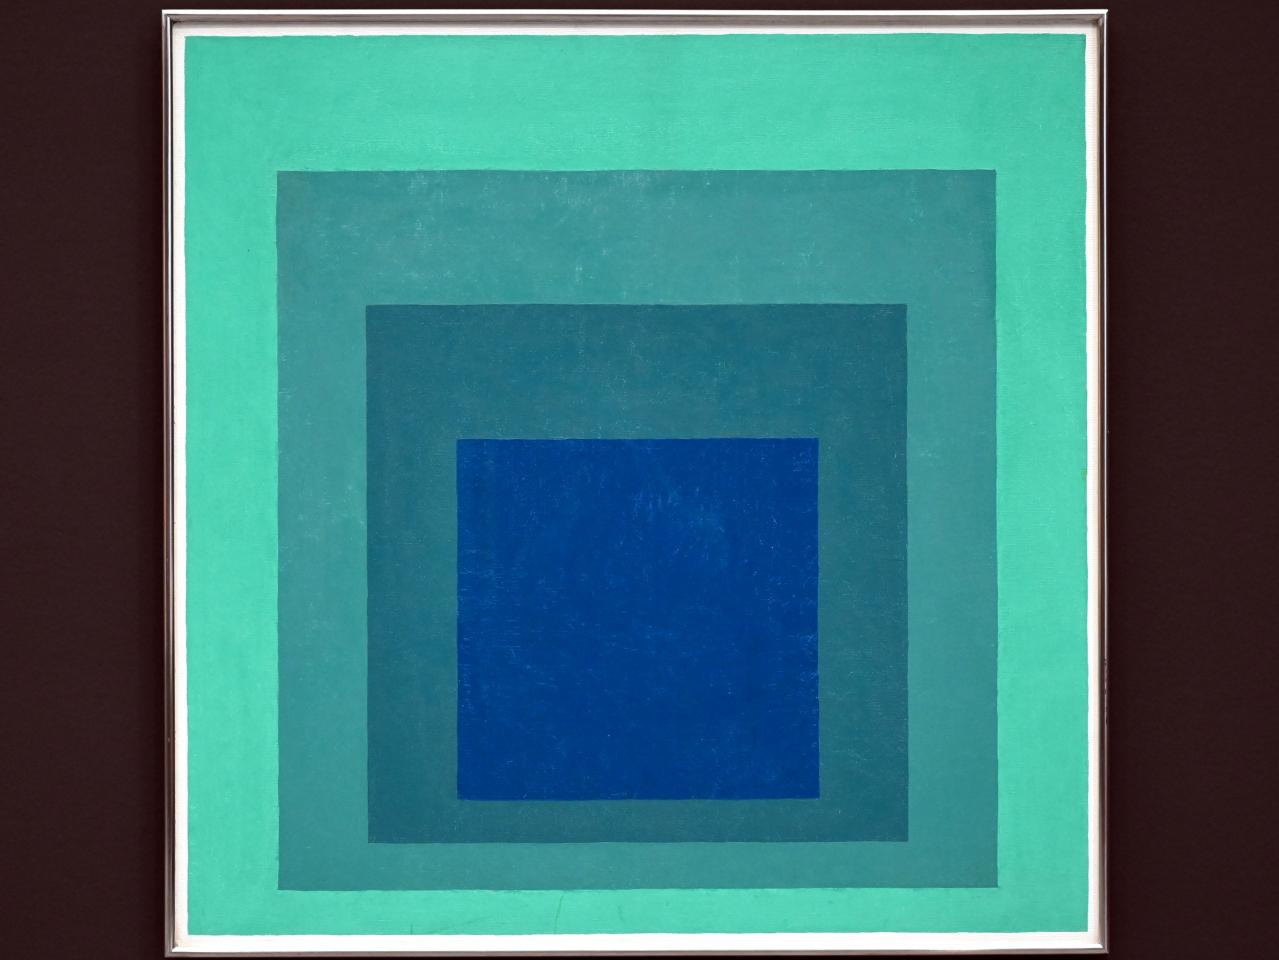 Josef Albers: Homage to the Square: Ritardando, 1958